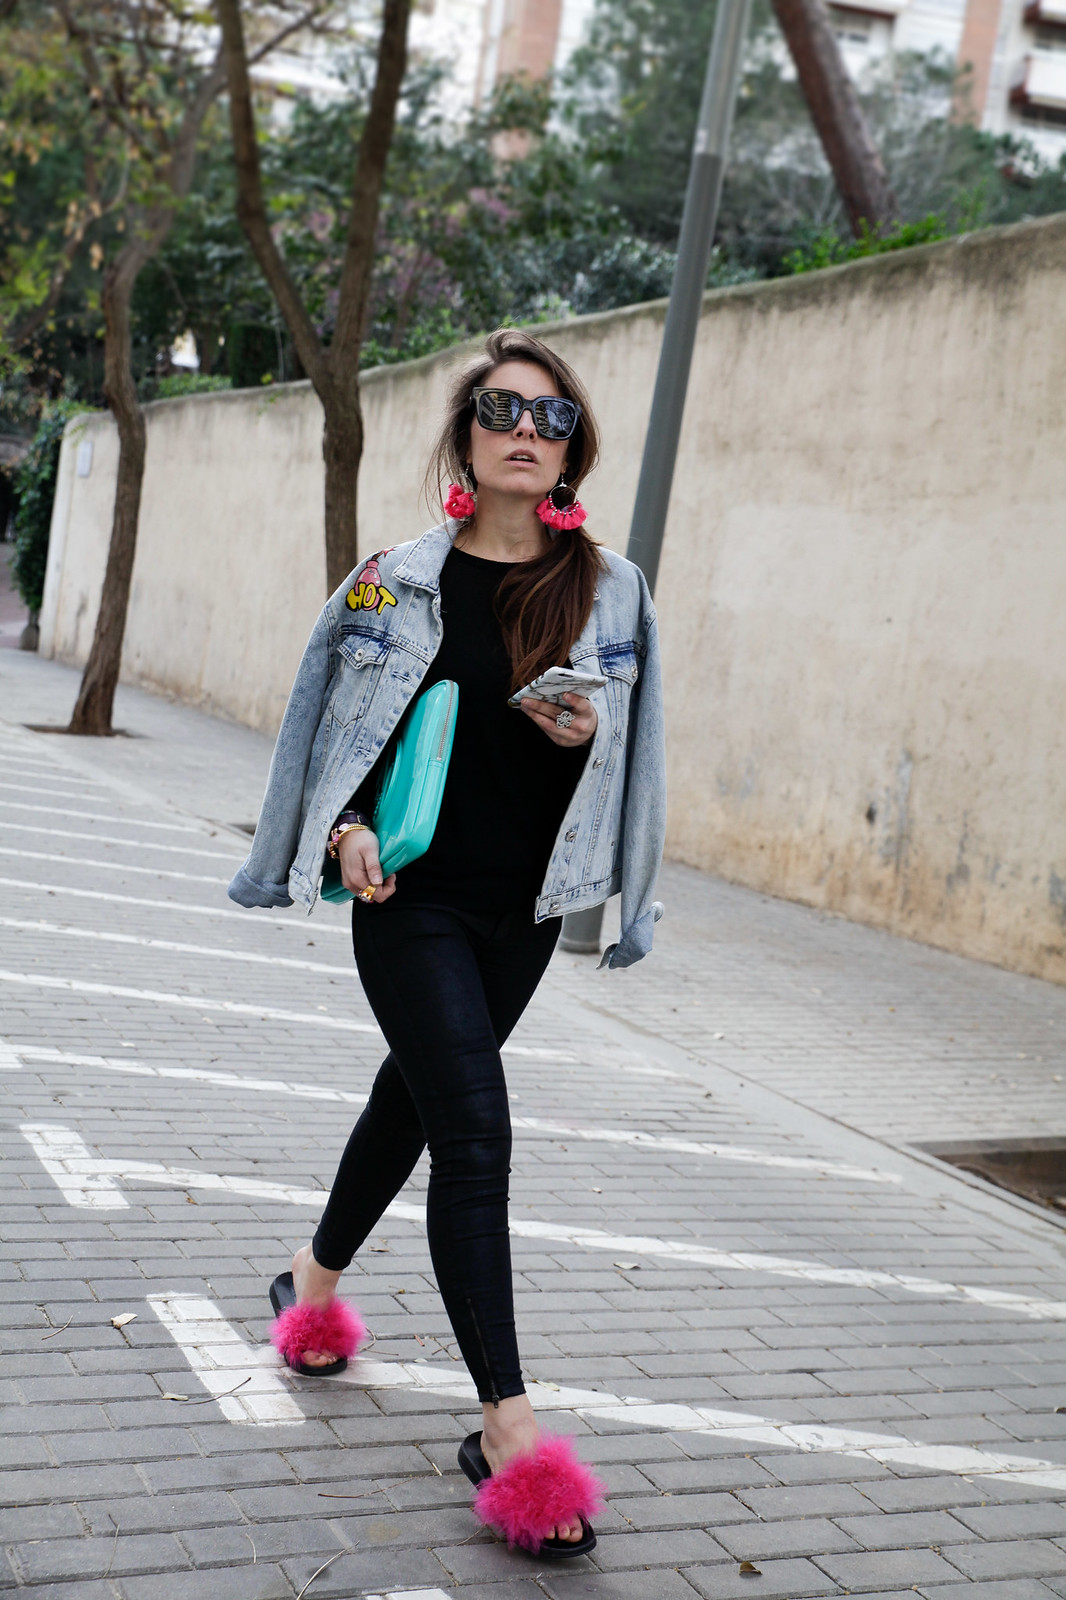 010_black_look_with_pink_fluffy_sandals_theguestgirl_laura_santolaria_noholita_dulceida_collagevintahe_sincerlyjules